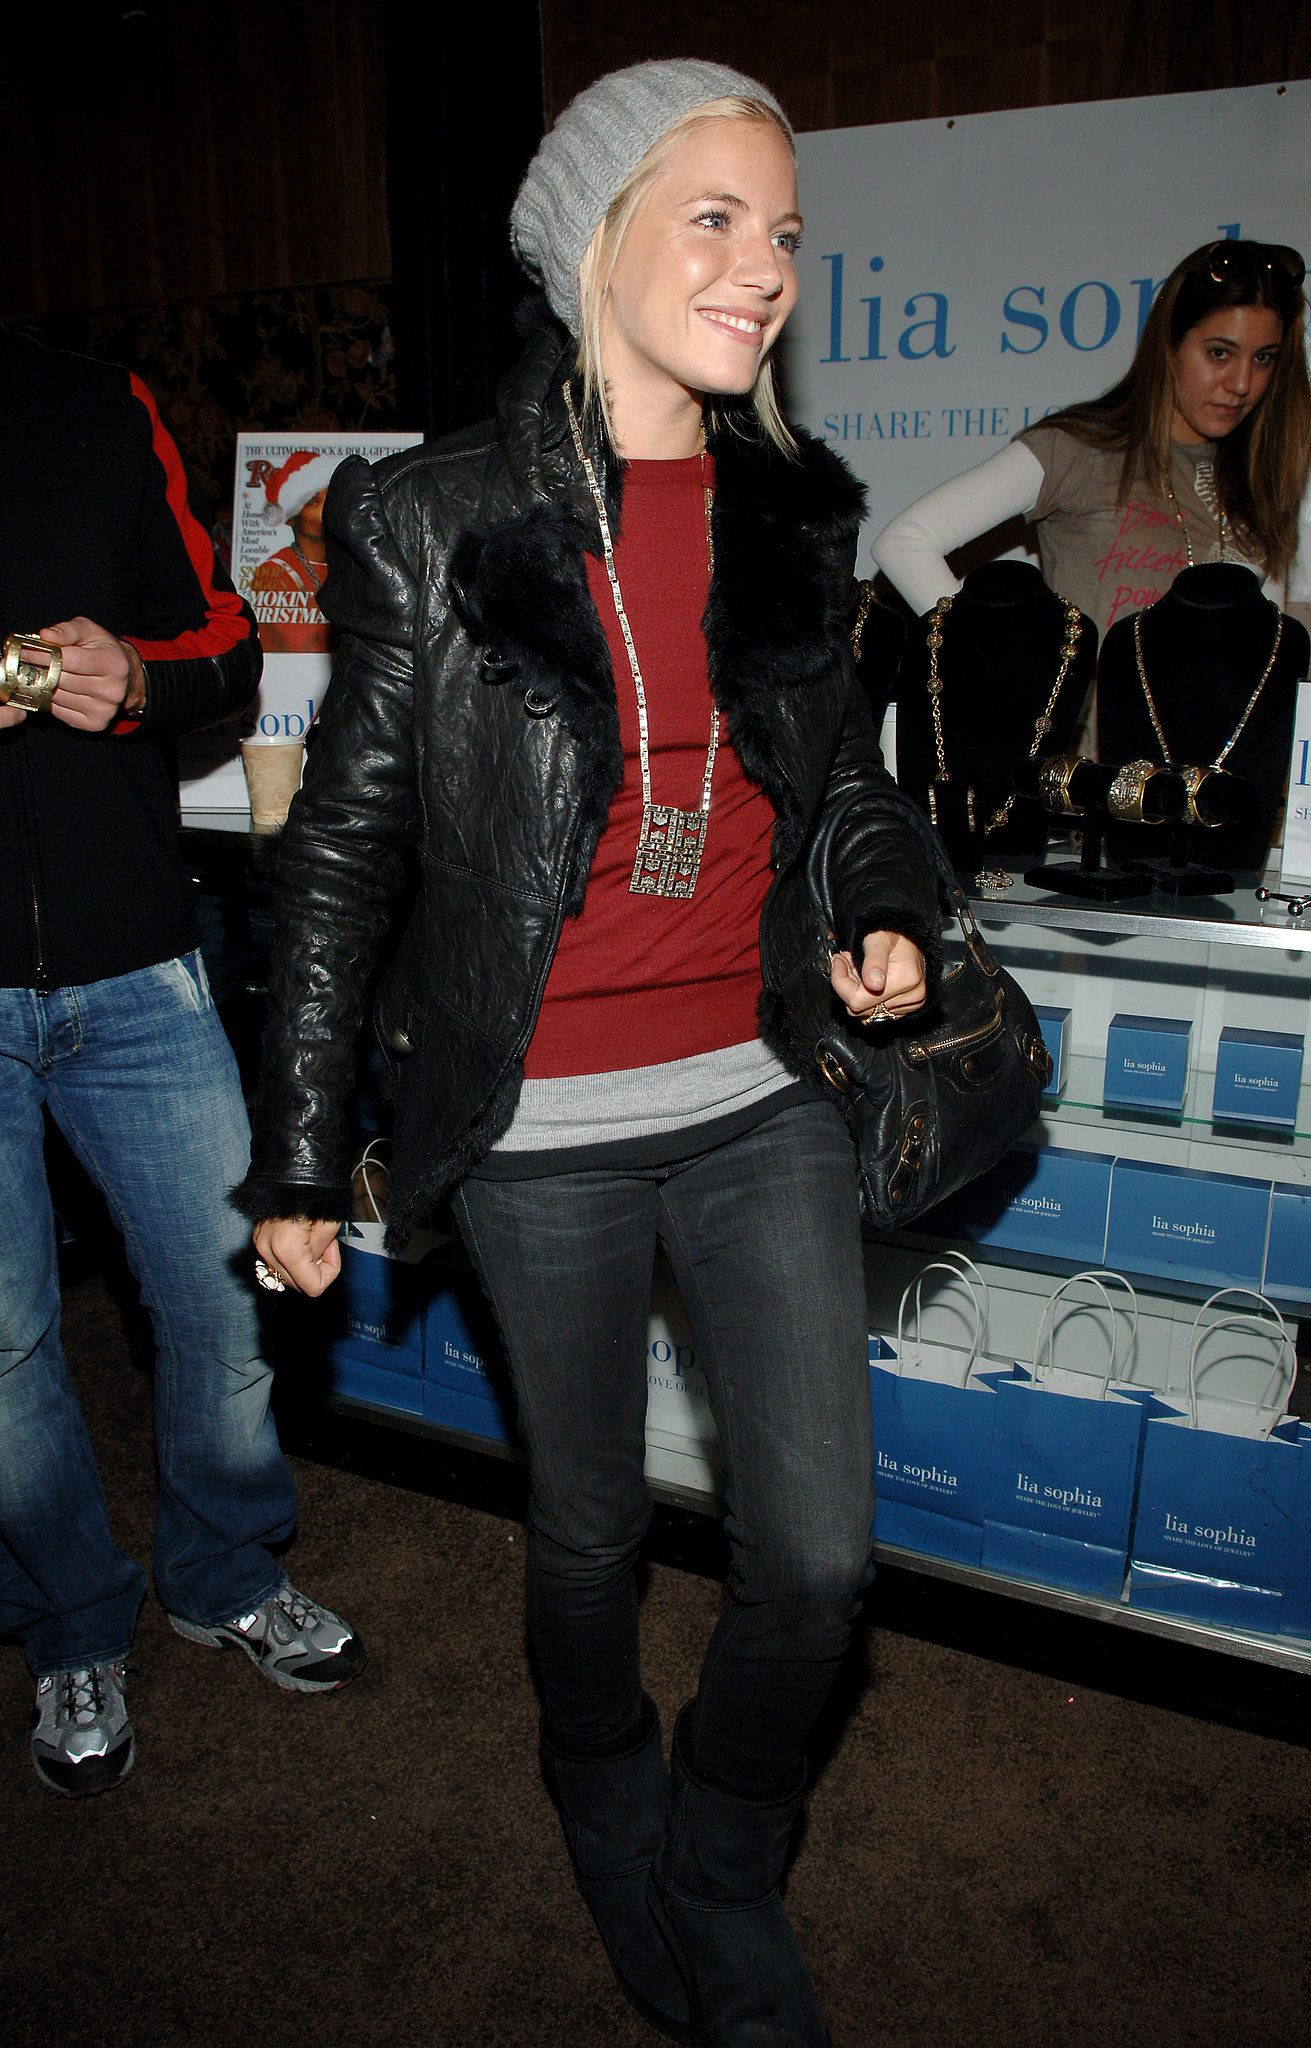 Sienna was bundled up and hanging in Park City in 2007.